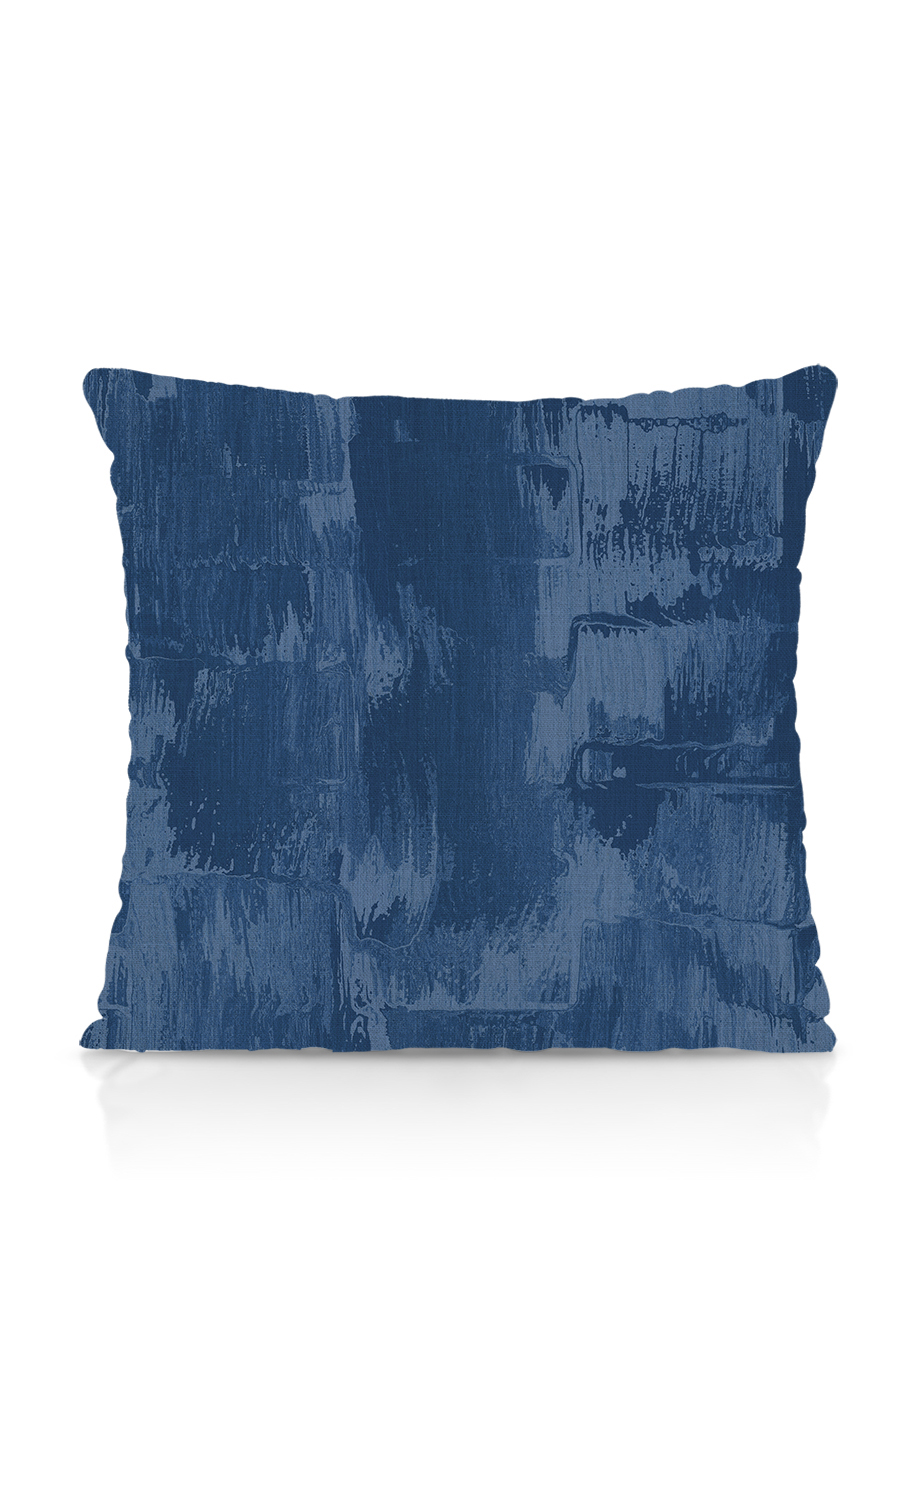 Printed Cushion For Living Room